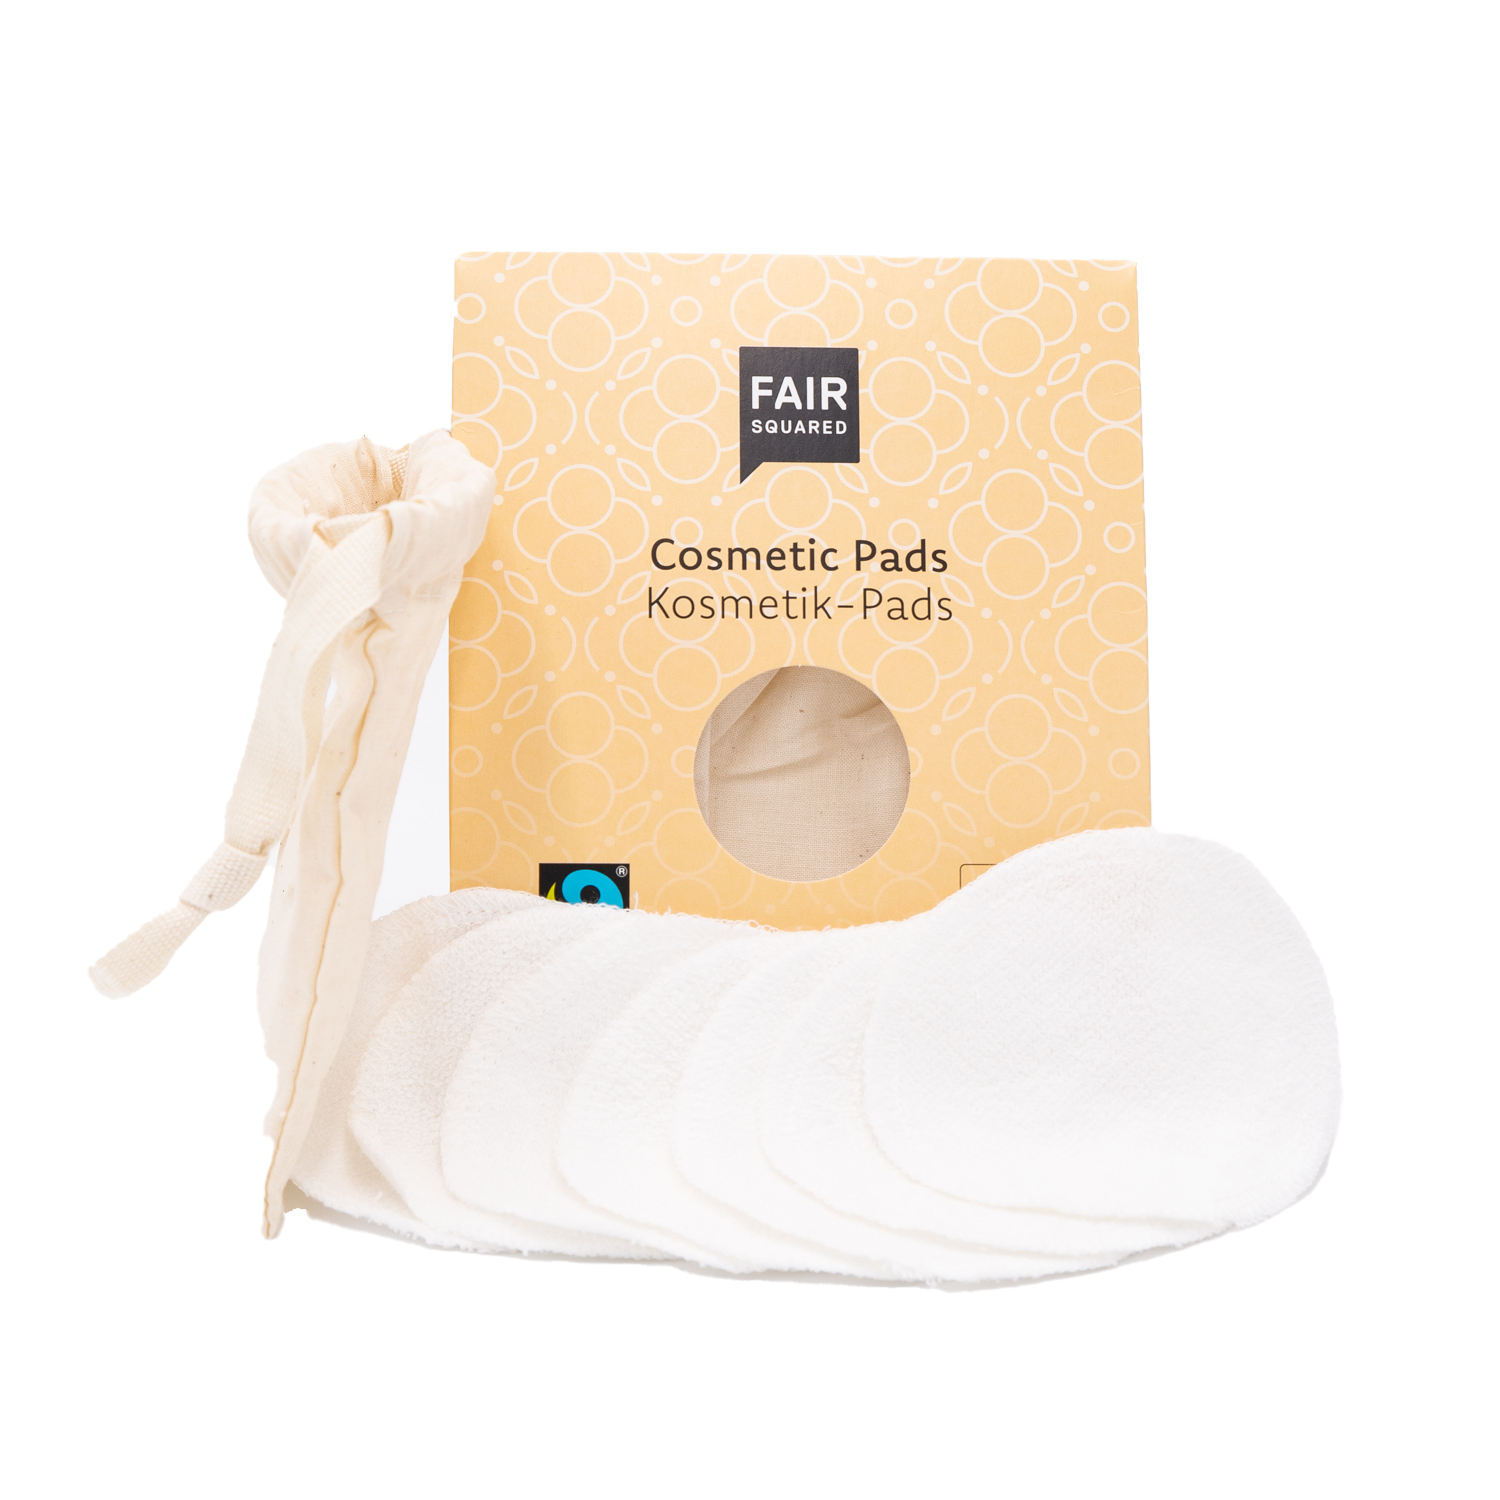 FAIR SQUARED Cosmetic Pads